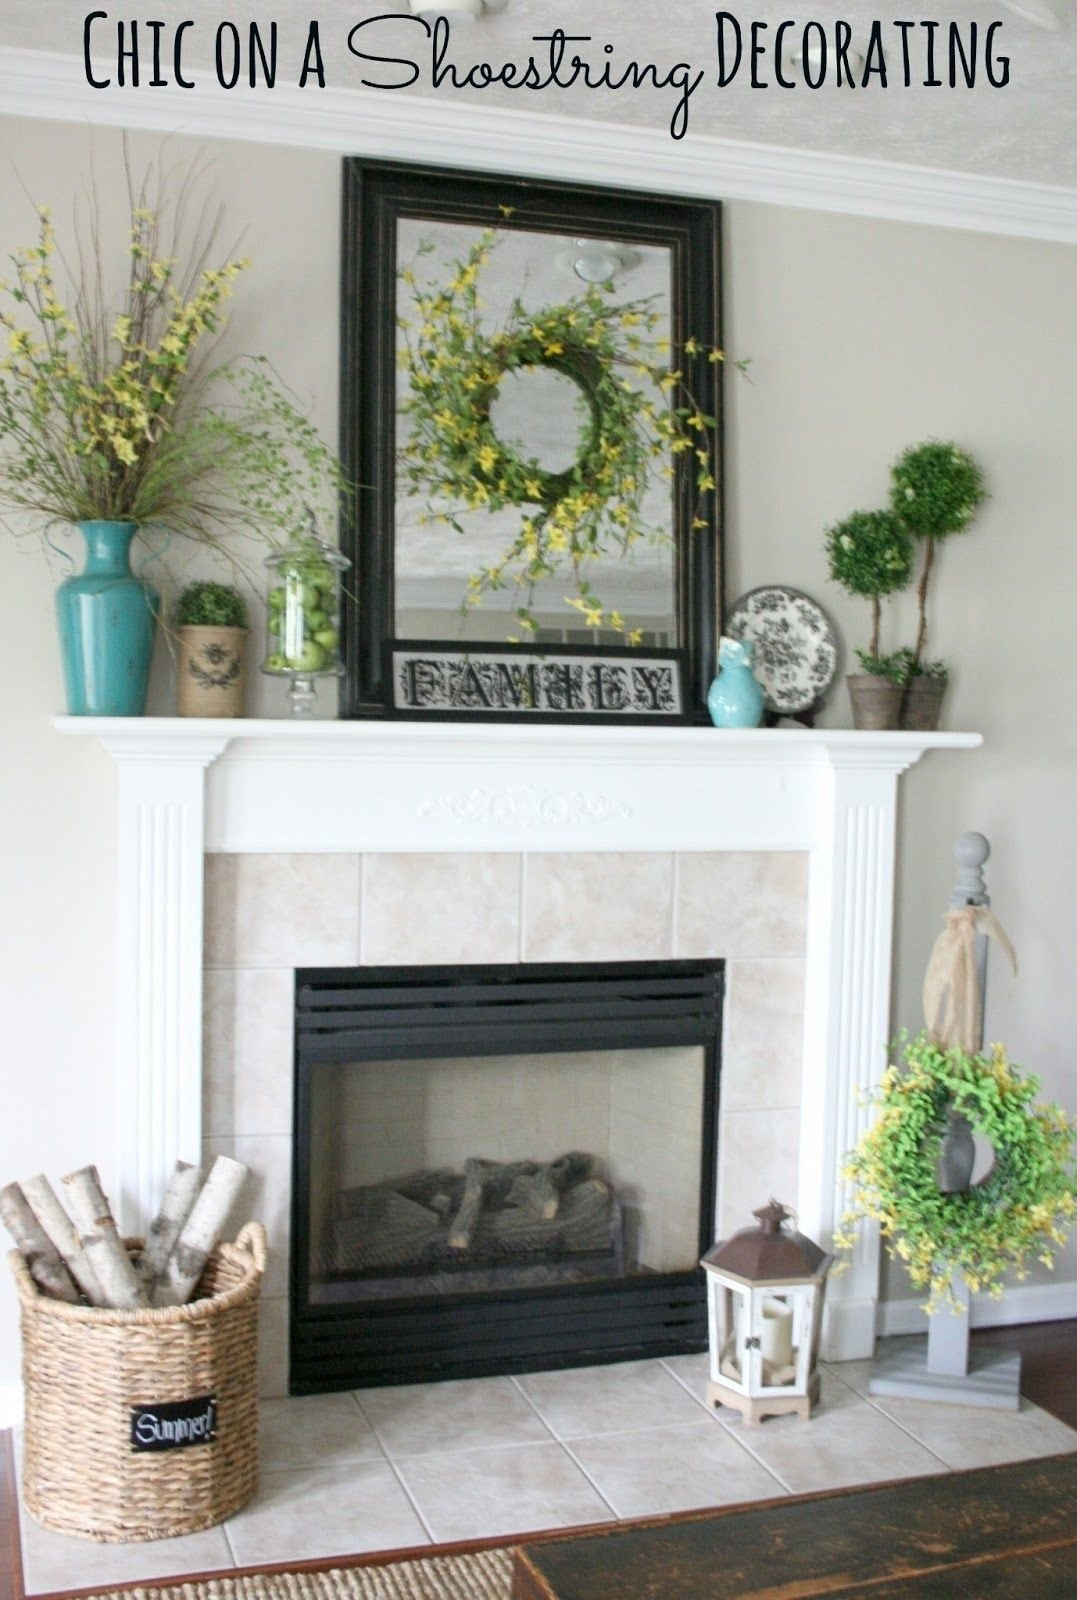 10 Unique Ideas For Fireplace Mantel Decor summer mantel turquoise yellow and greenchic on a shoestring